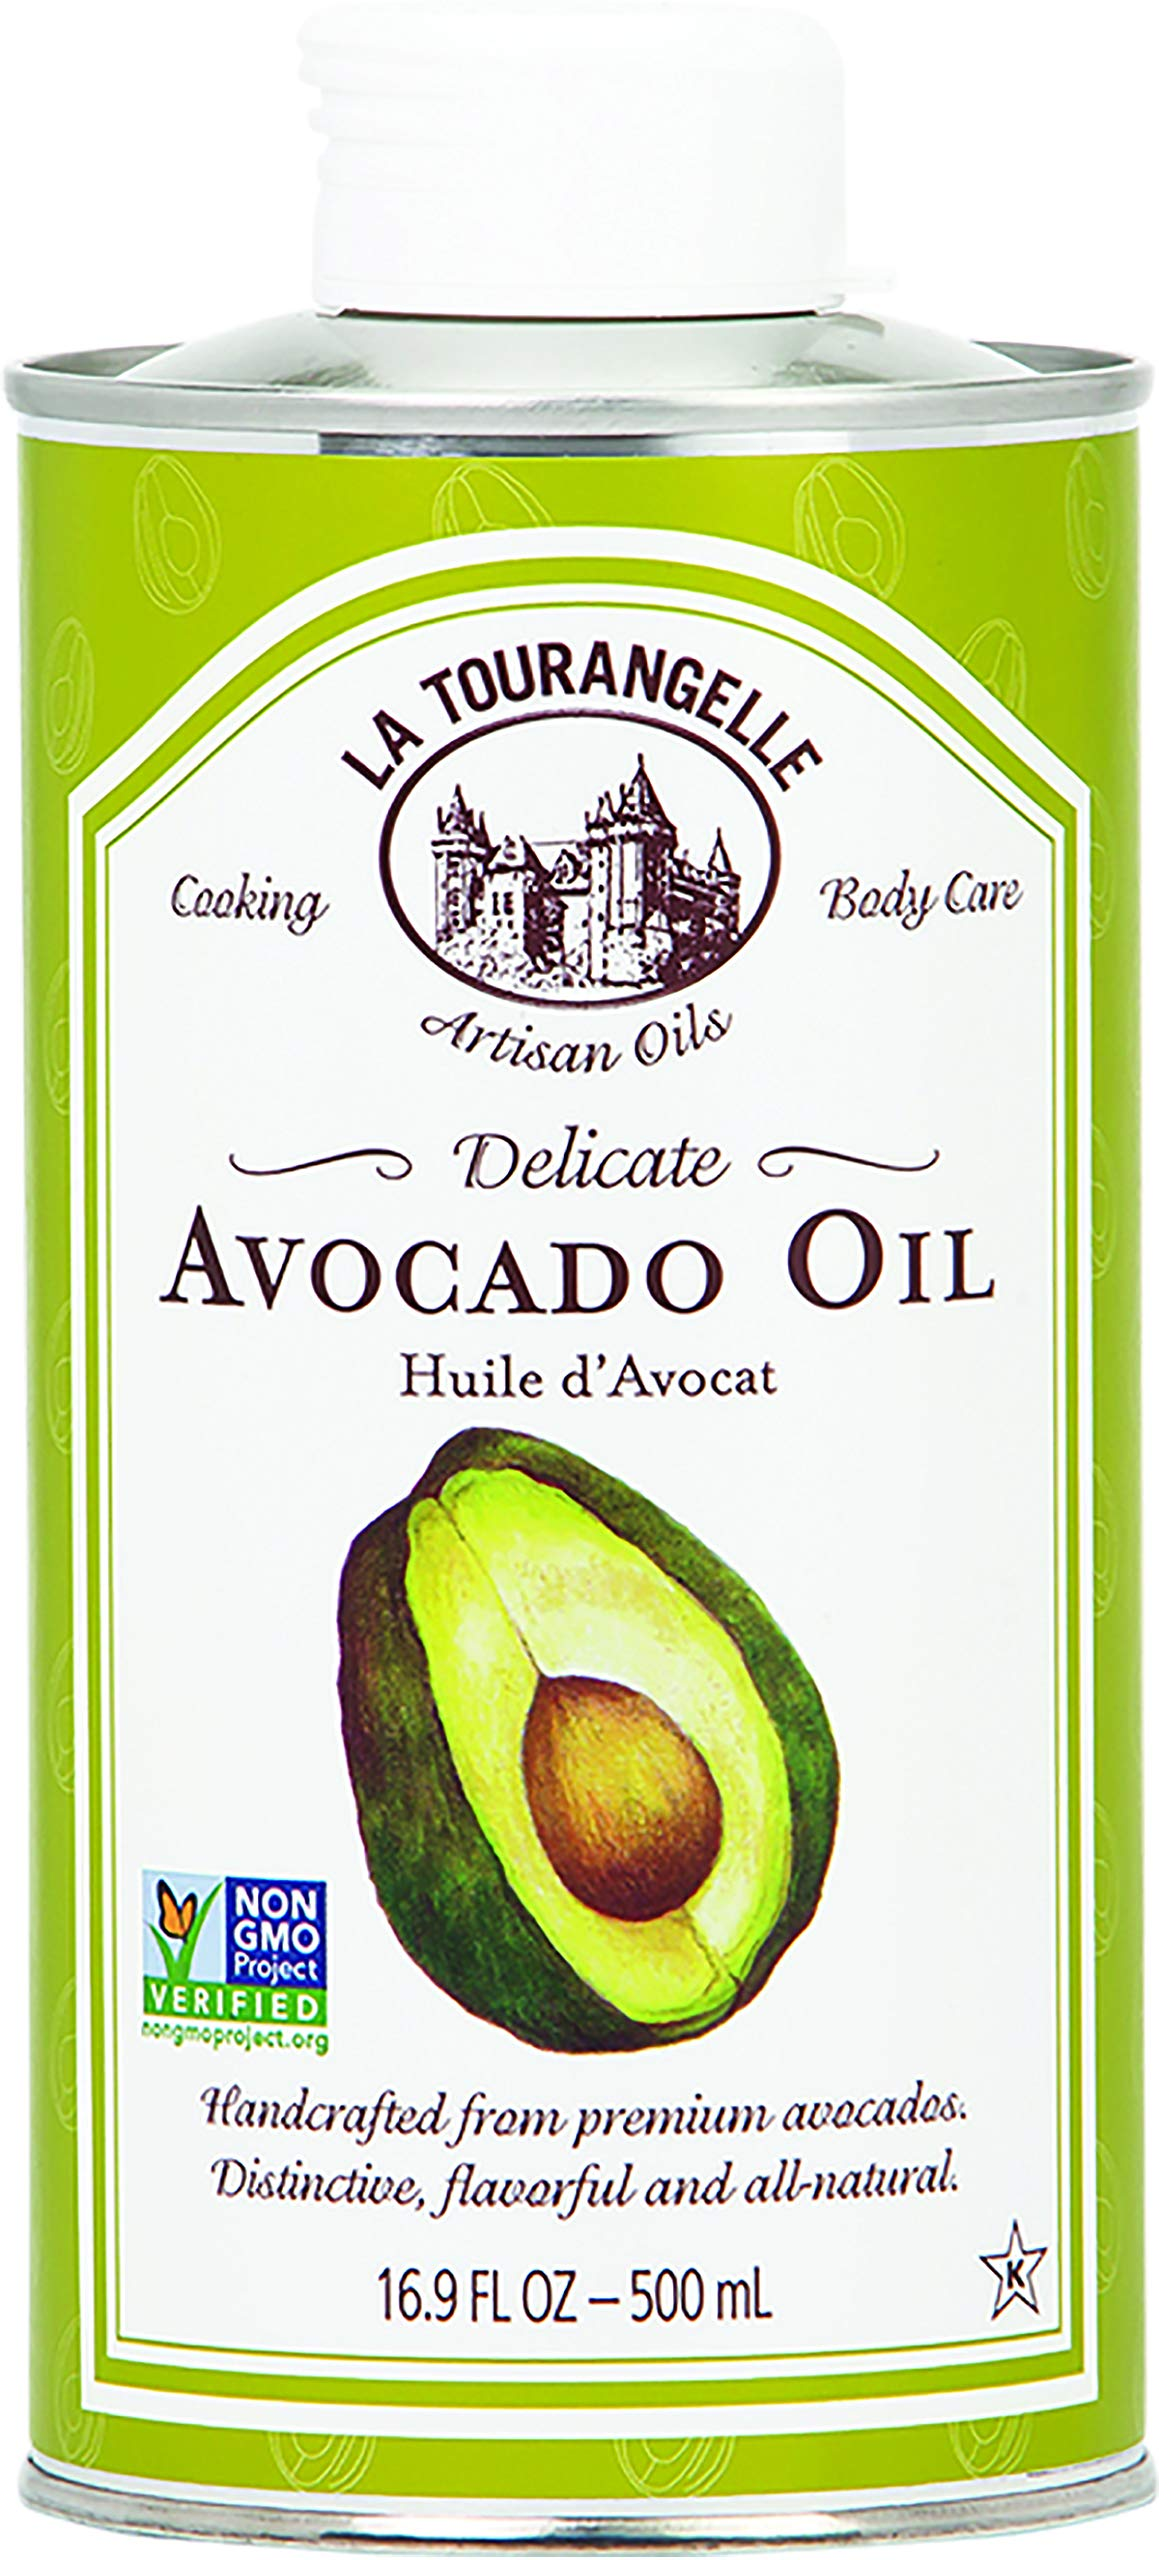 La Tourangelle Avocado Oil 16.9 Fl. Oz., All-Natural, Artisanal, Great for Salads, Fruit, Fish or Vegetables, Buttery Flavor